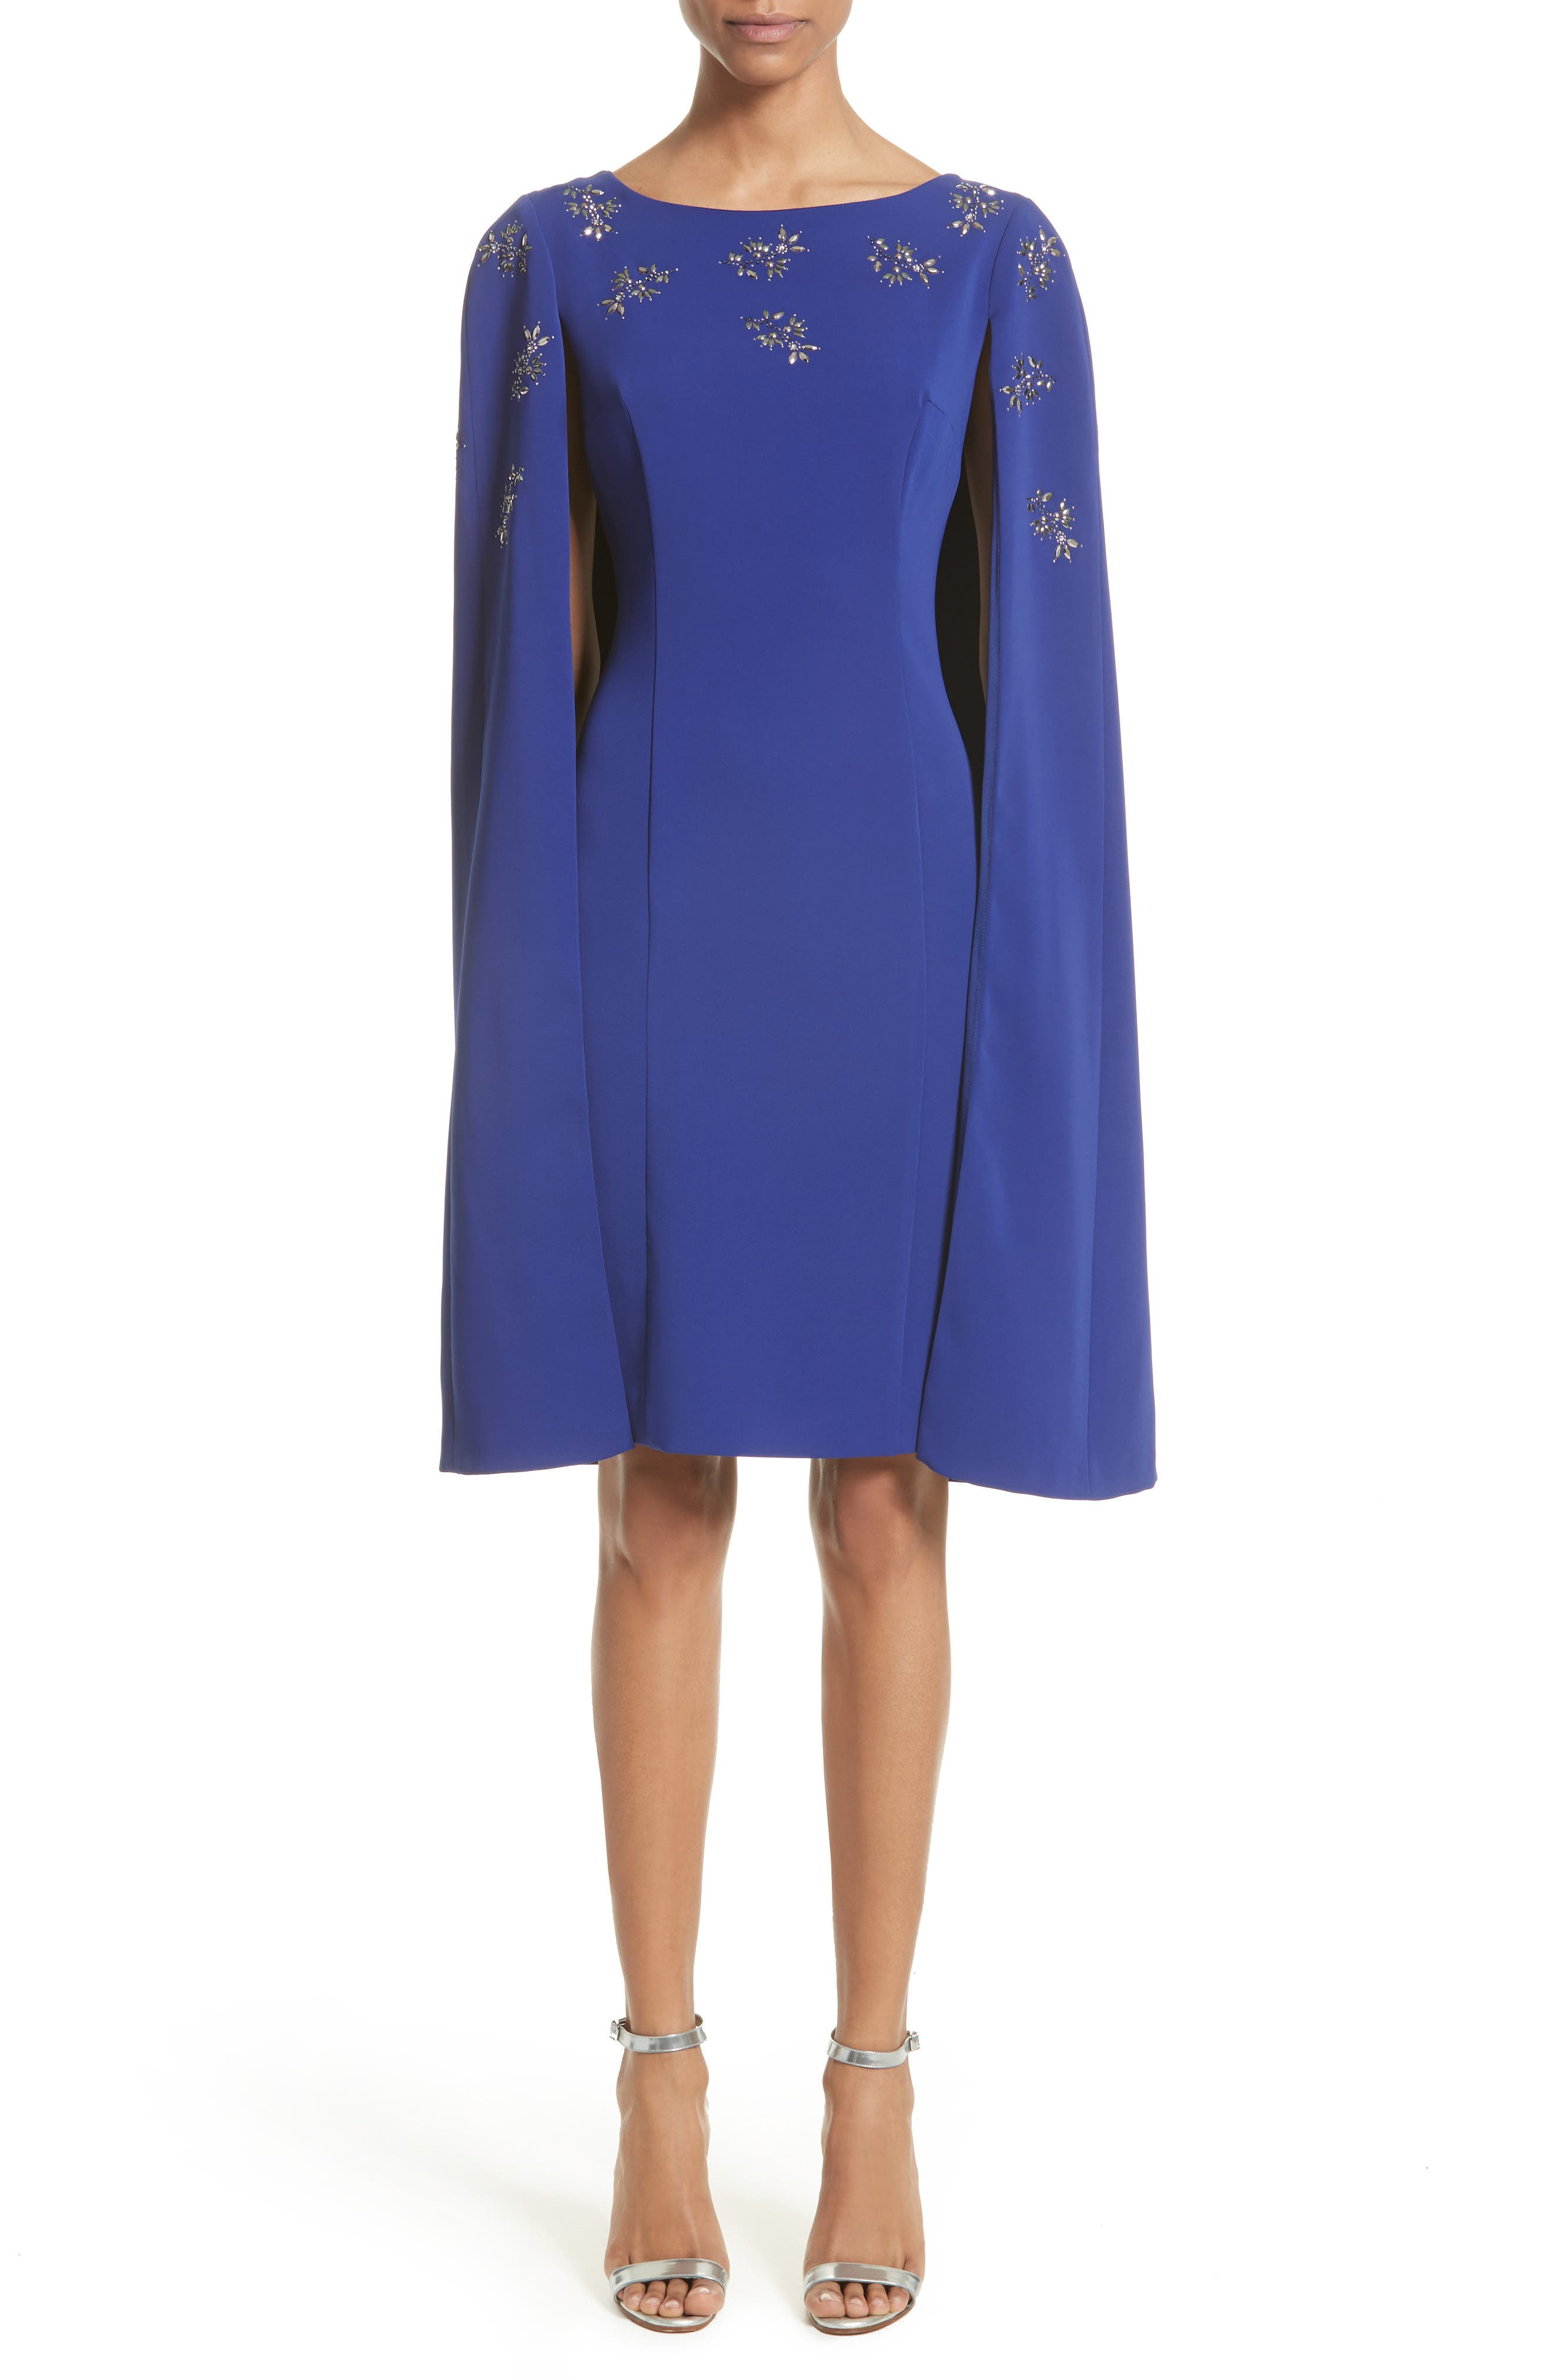 Alternate Image 1 Selected - St. John Collection Embellished Classic Stretch Cady Cape Dress